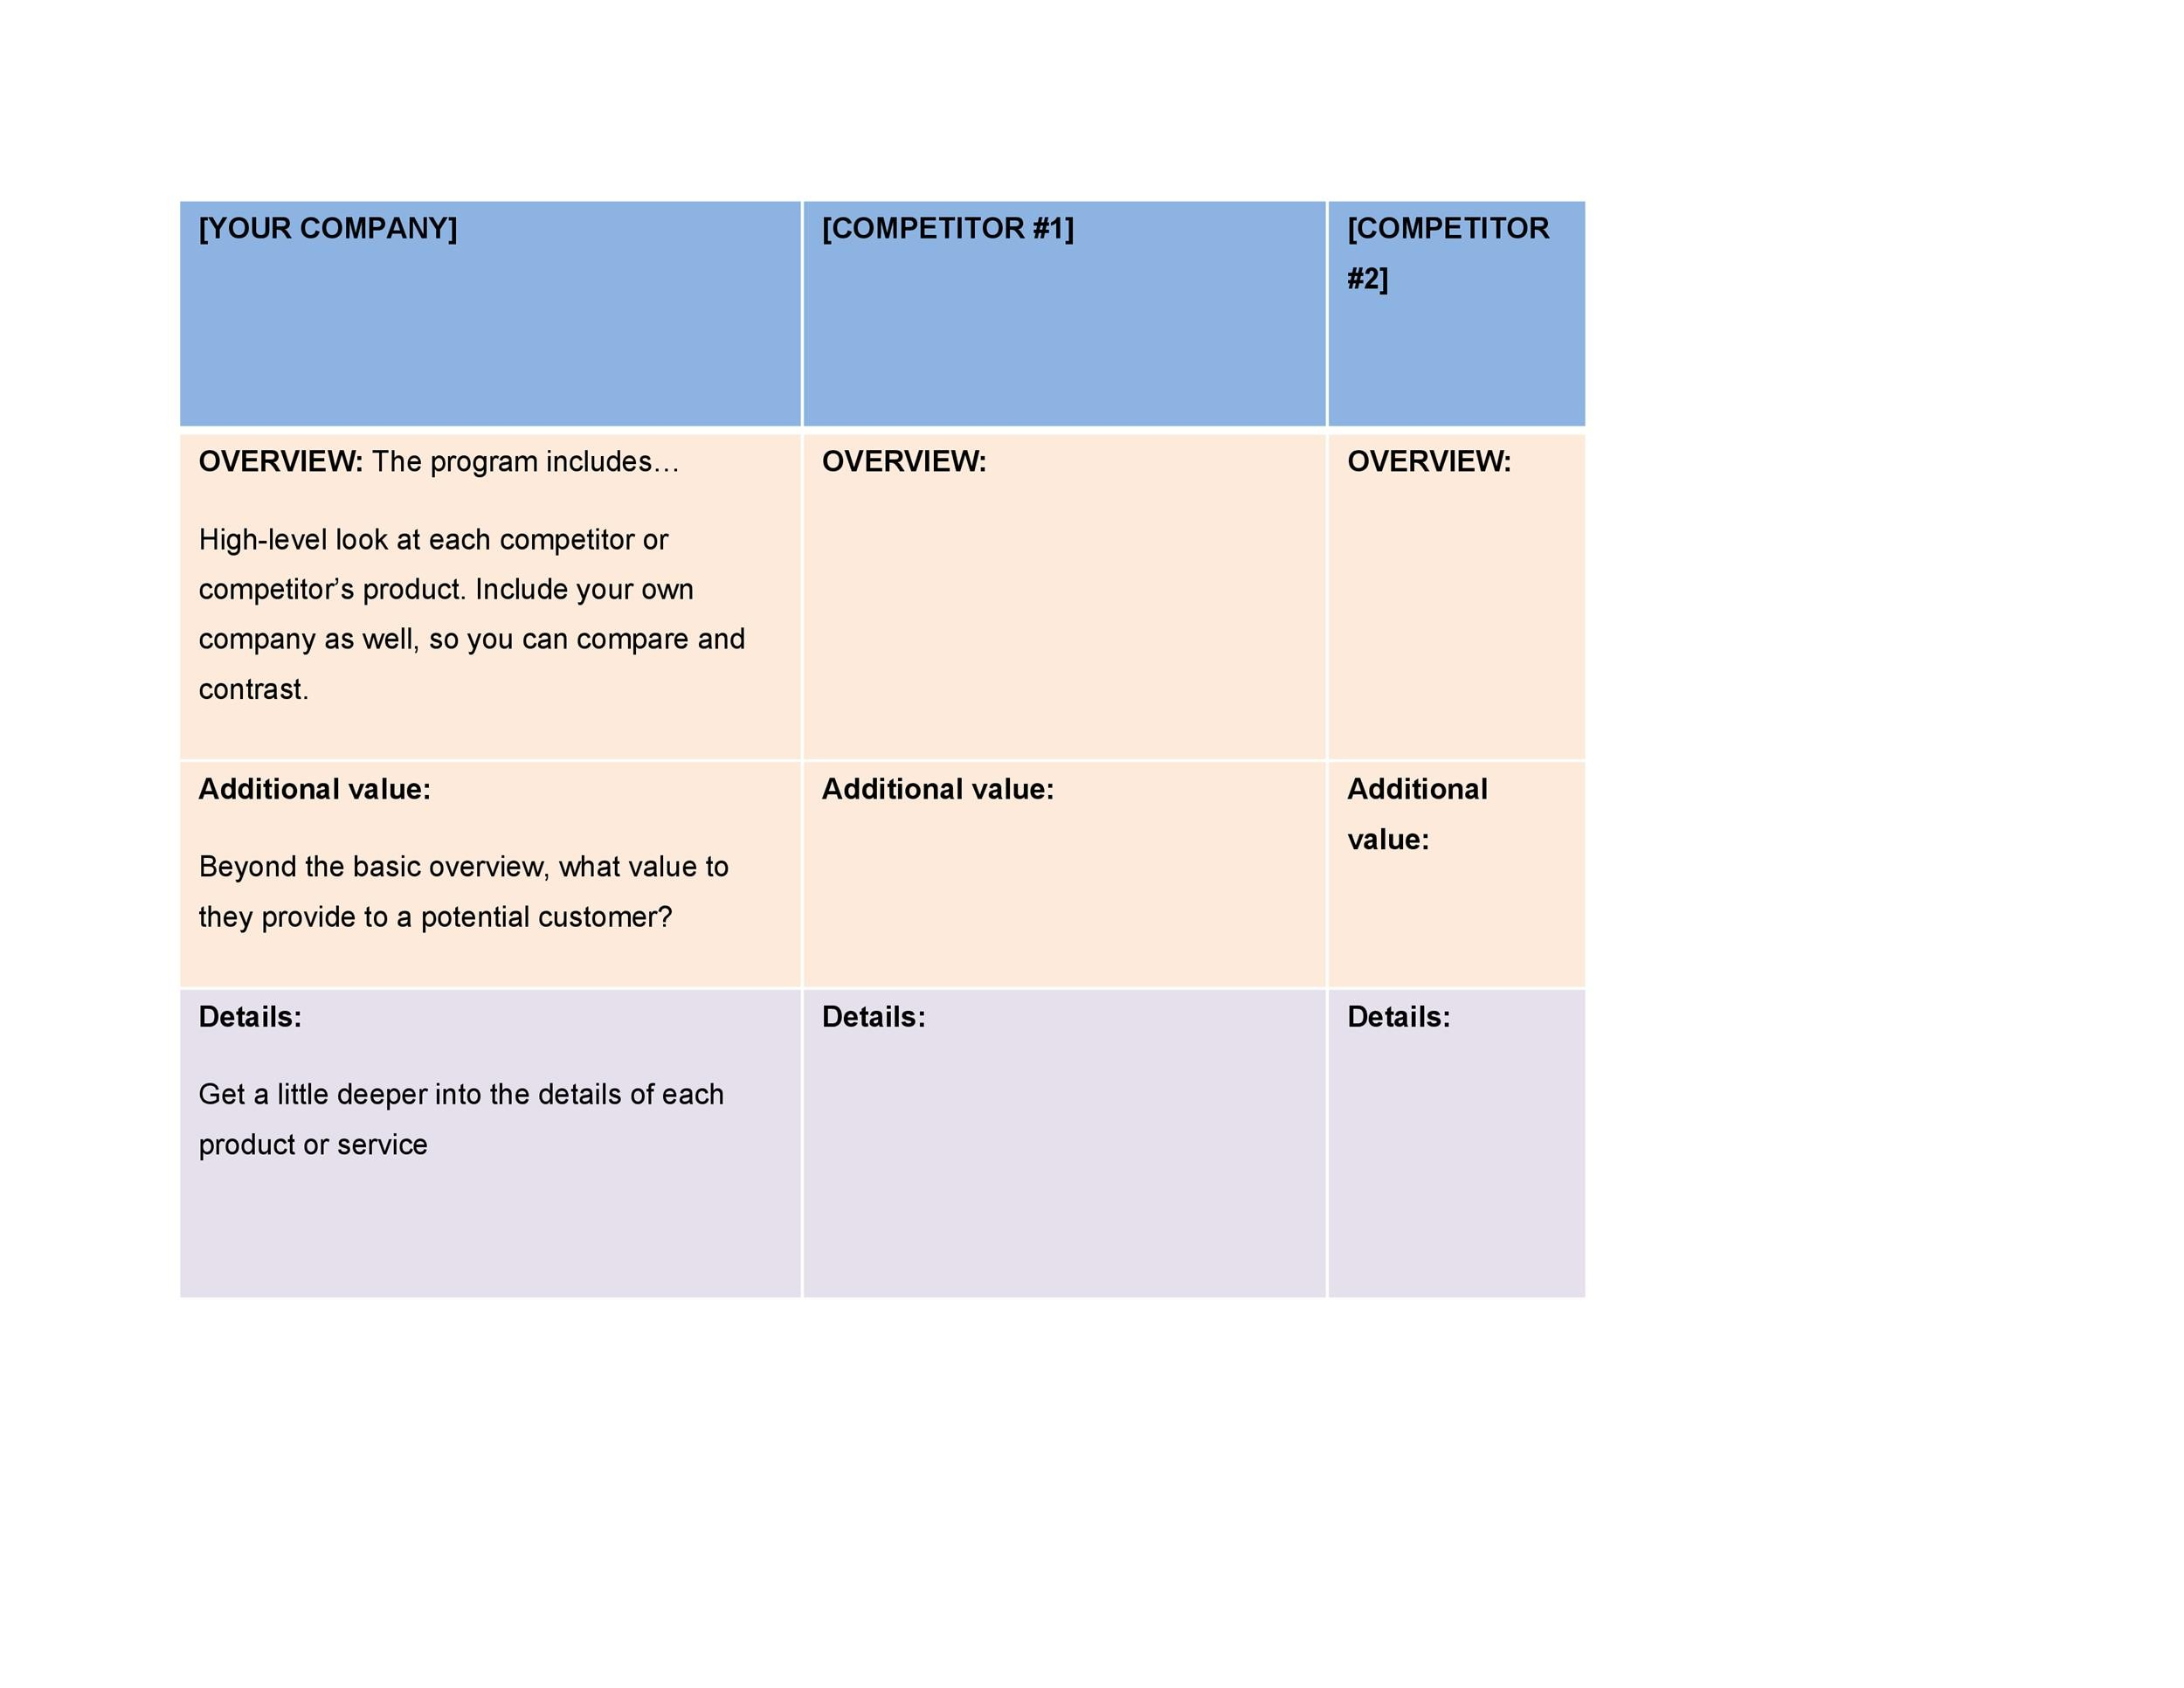 Competitive Analysis Templates - 40 Great Examples Excel, Word, PDF - competitor analysis example